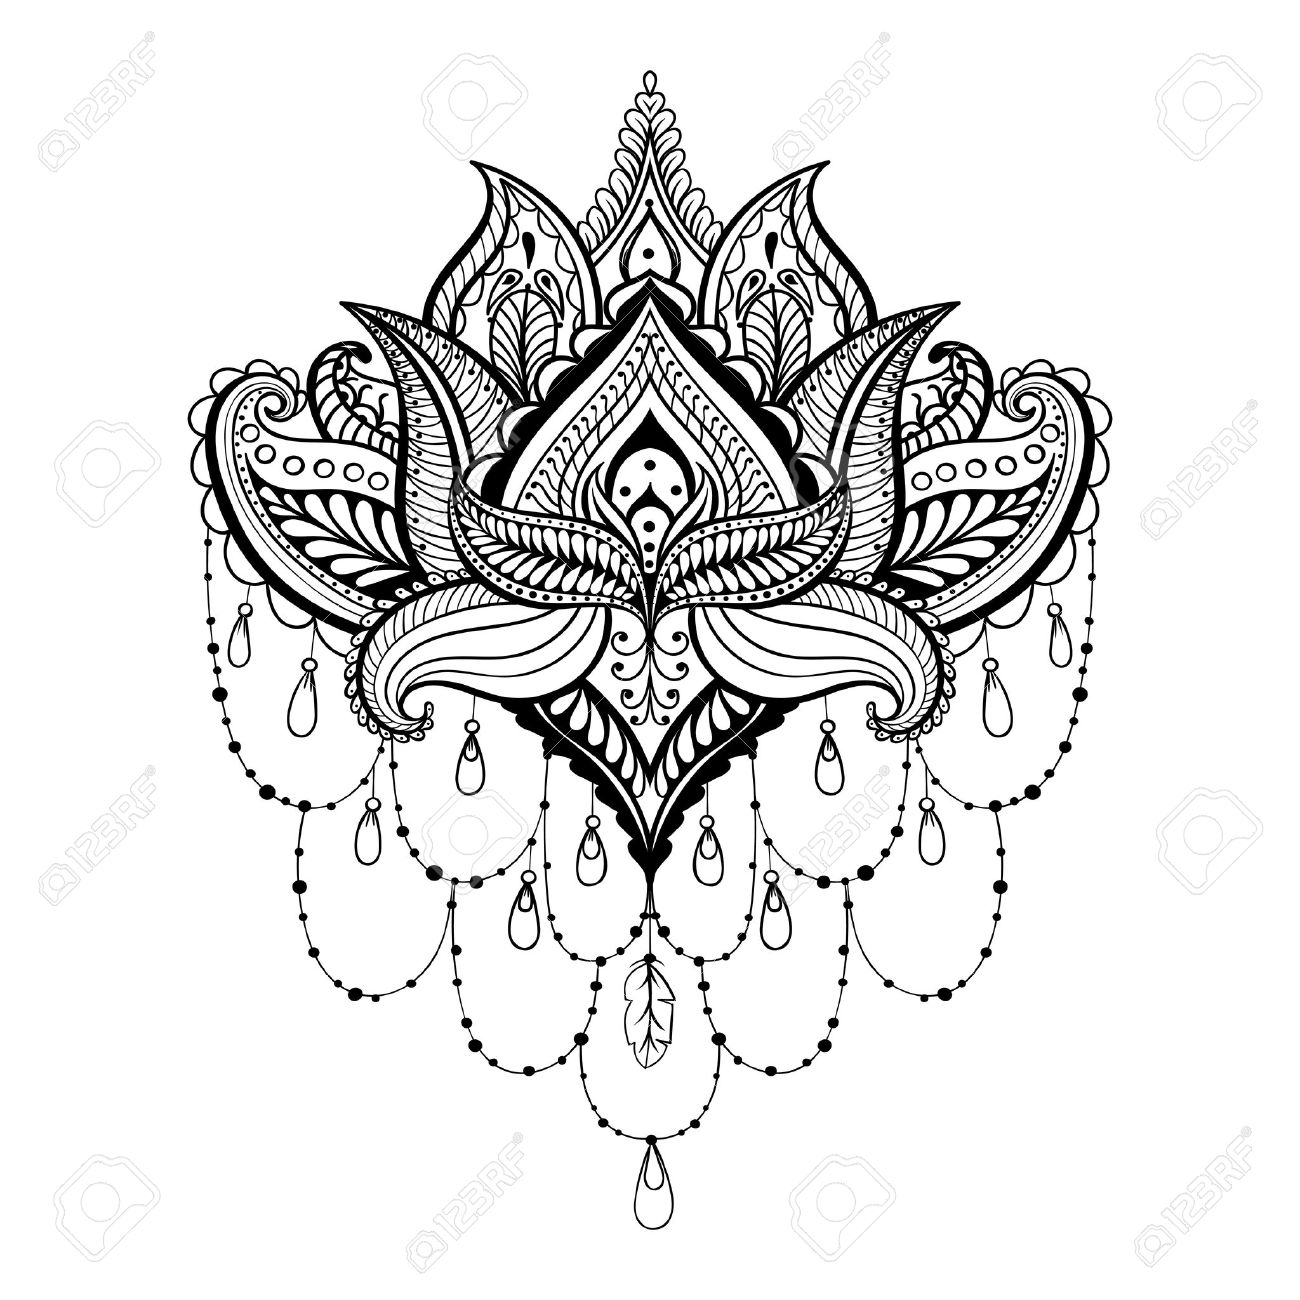 1300x1300 Vector Ornamental Lotus, Ethnic Zentangled Henna Tattoo, Patterned